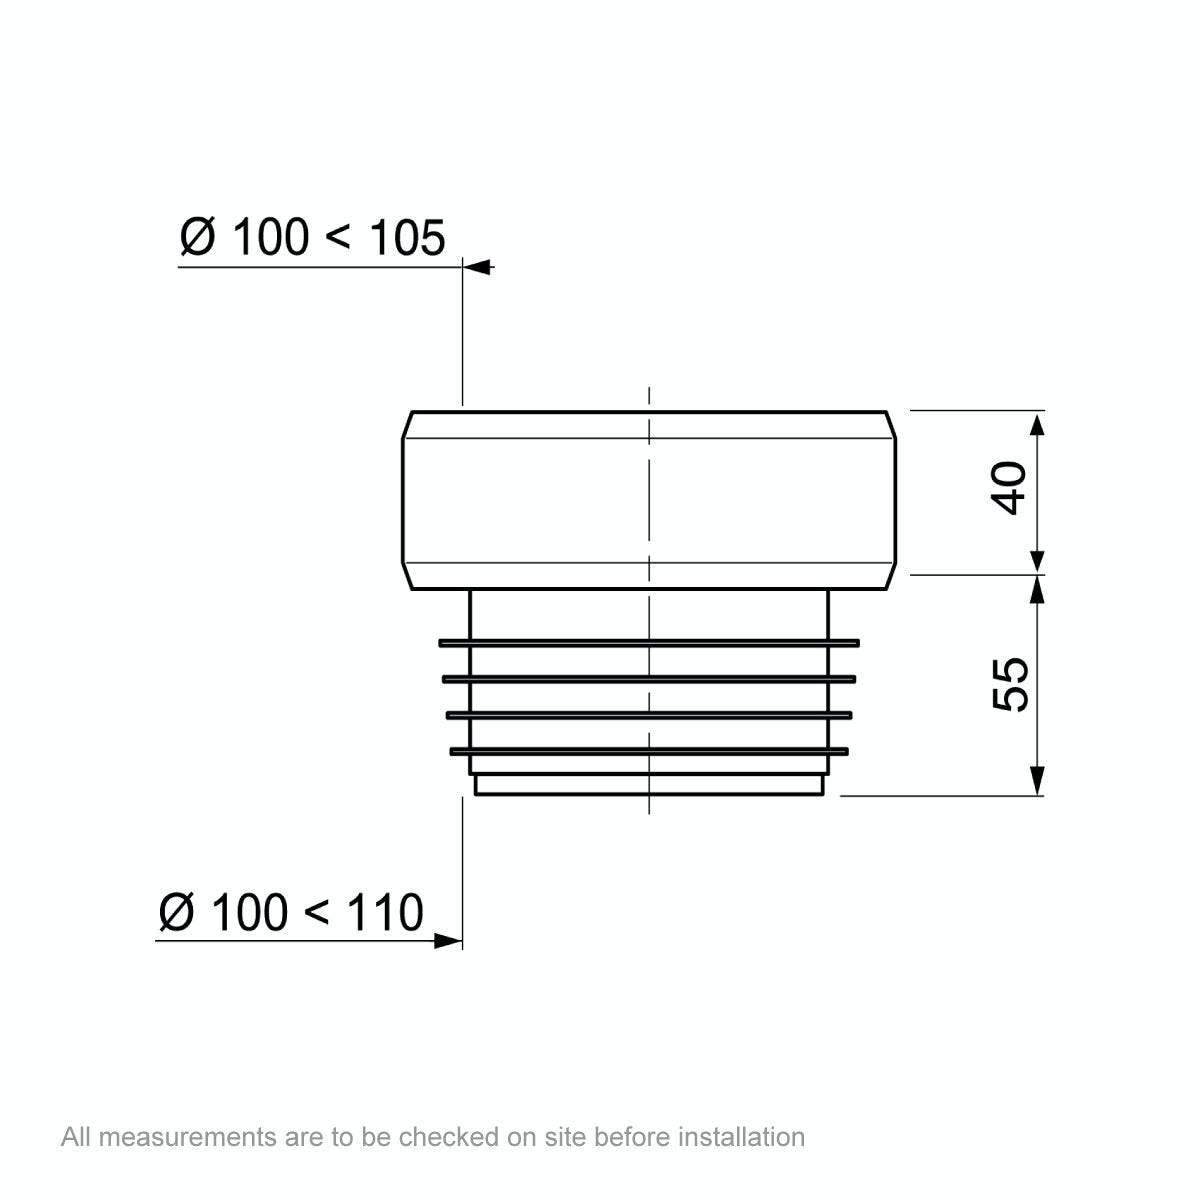 Dimensions for Macdee Wirquin short straight pan connector